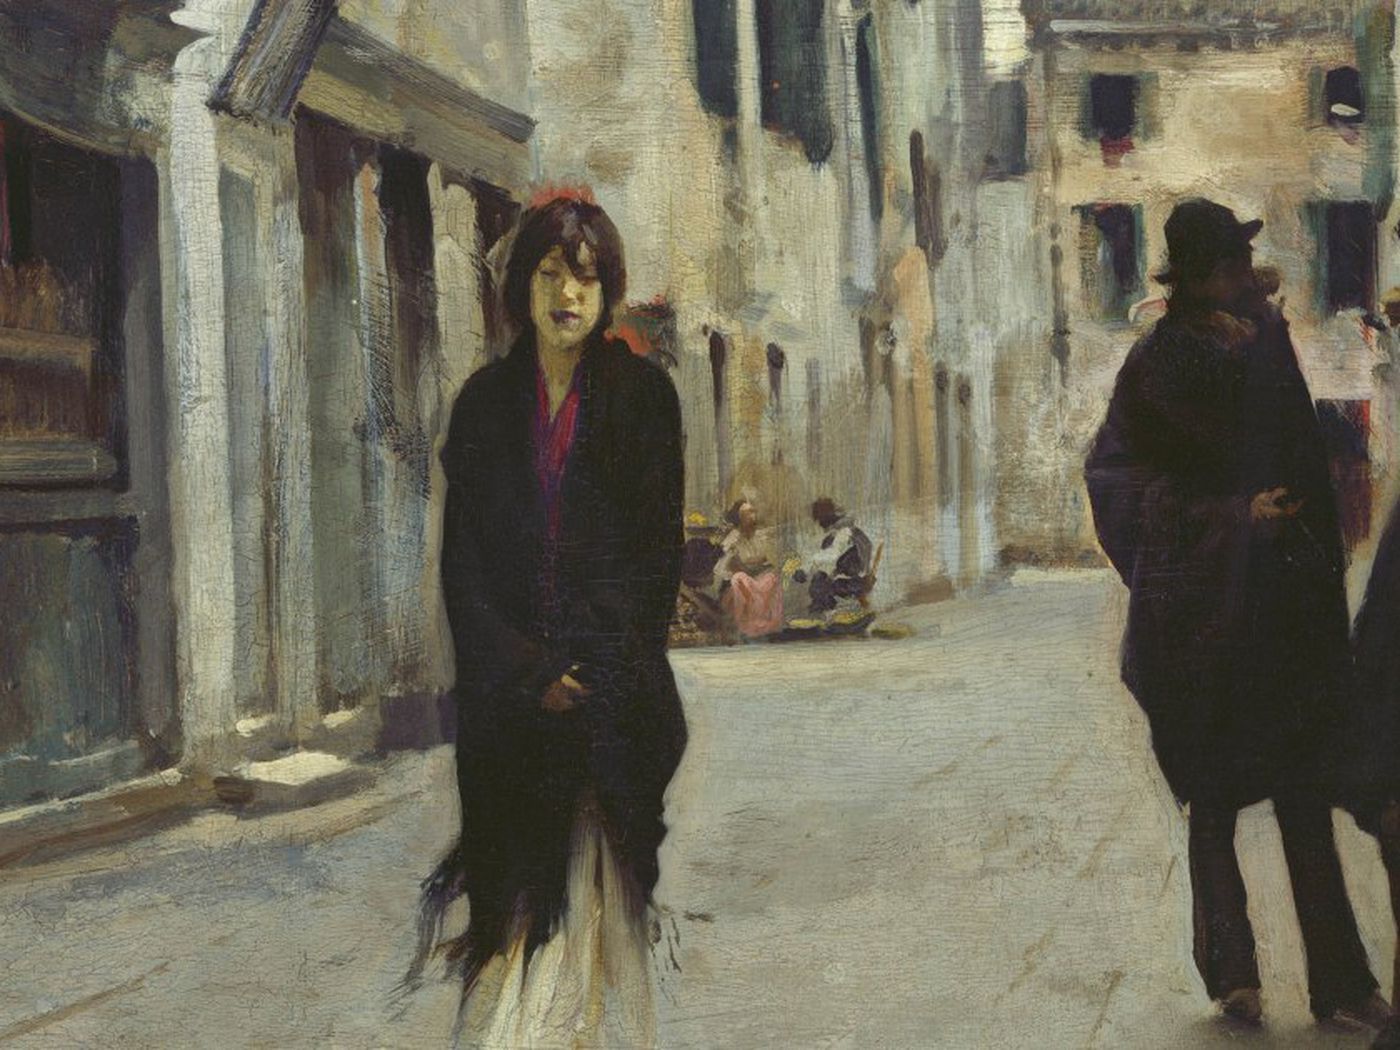 The art of John Singer Sargent reflects a Chicago era in new 1400x1050